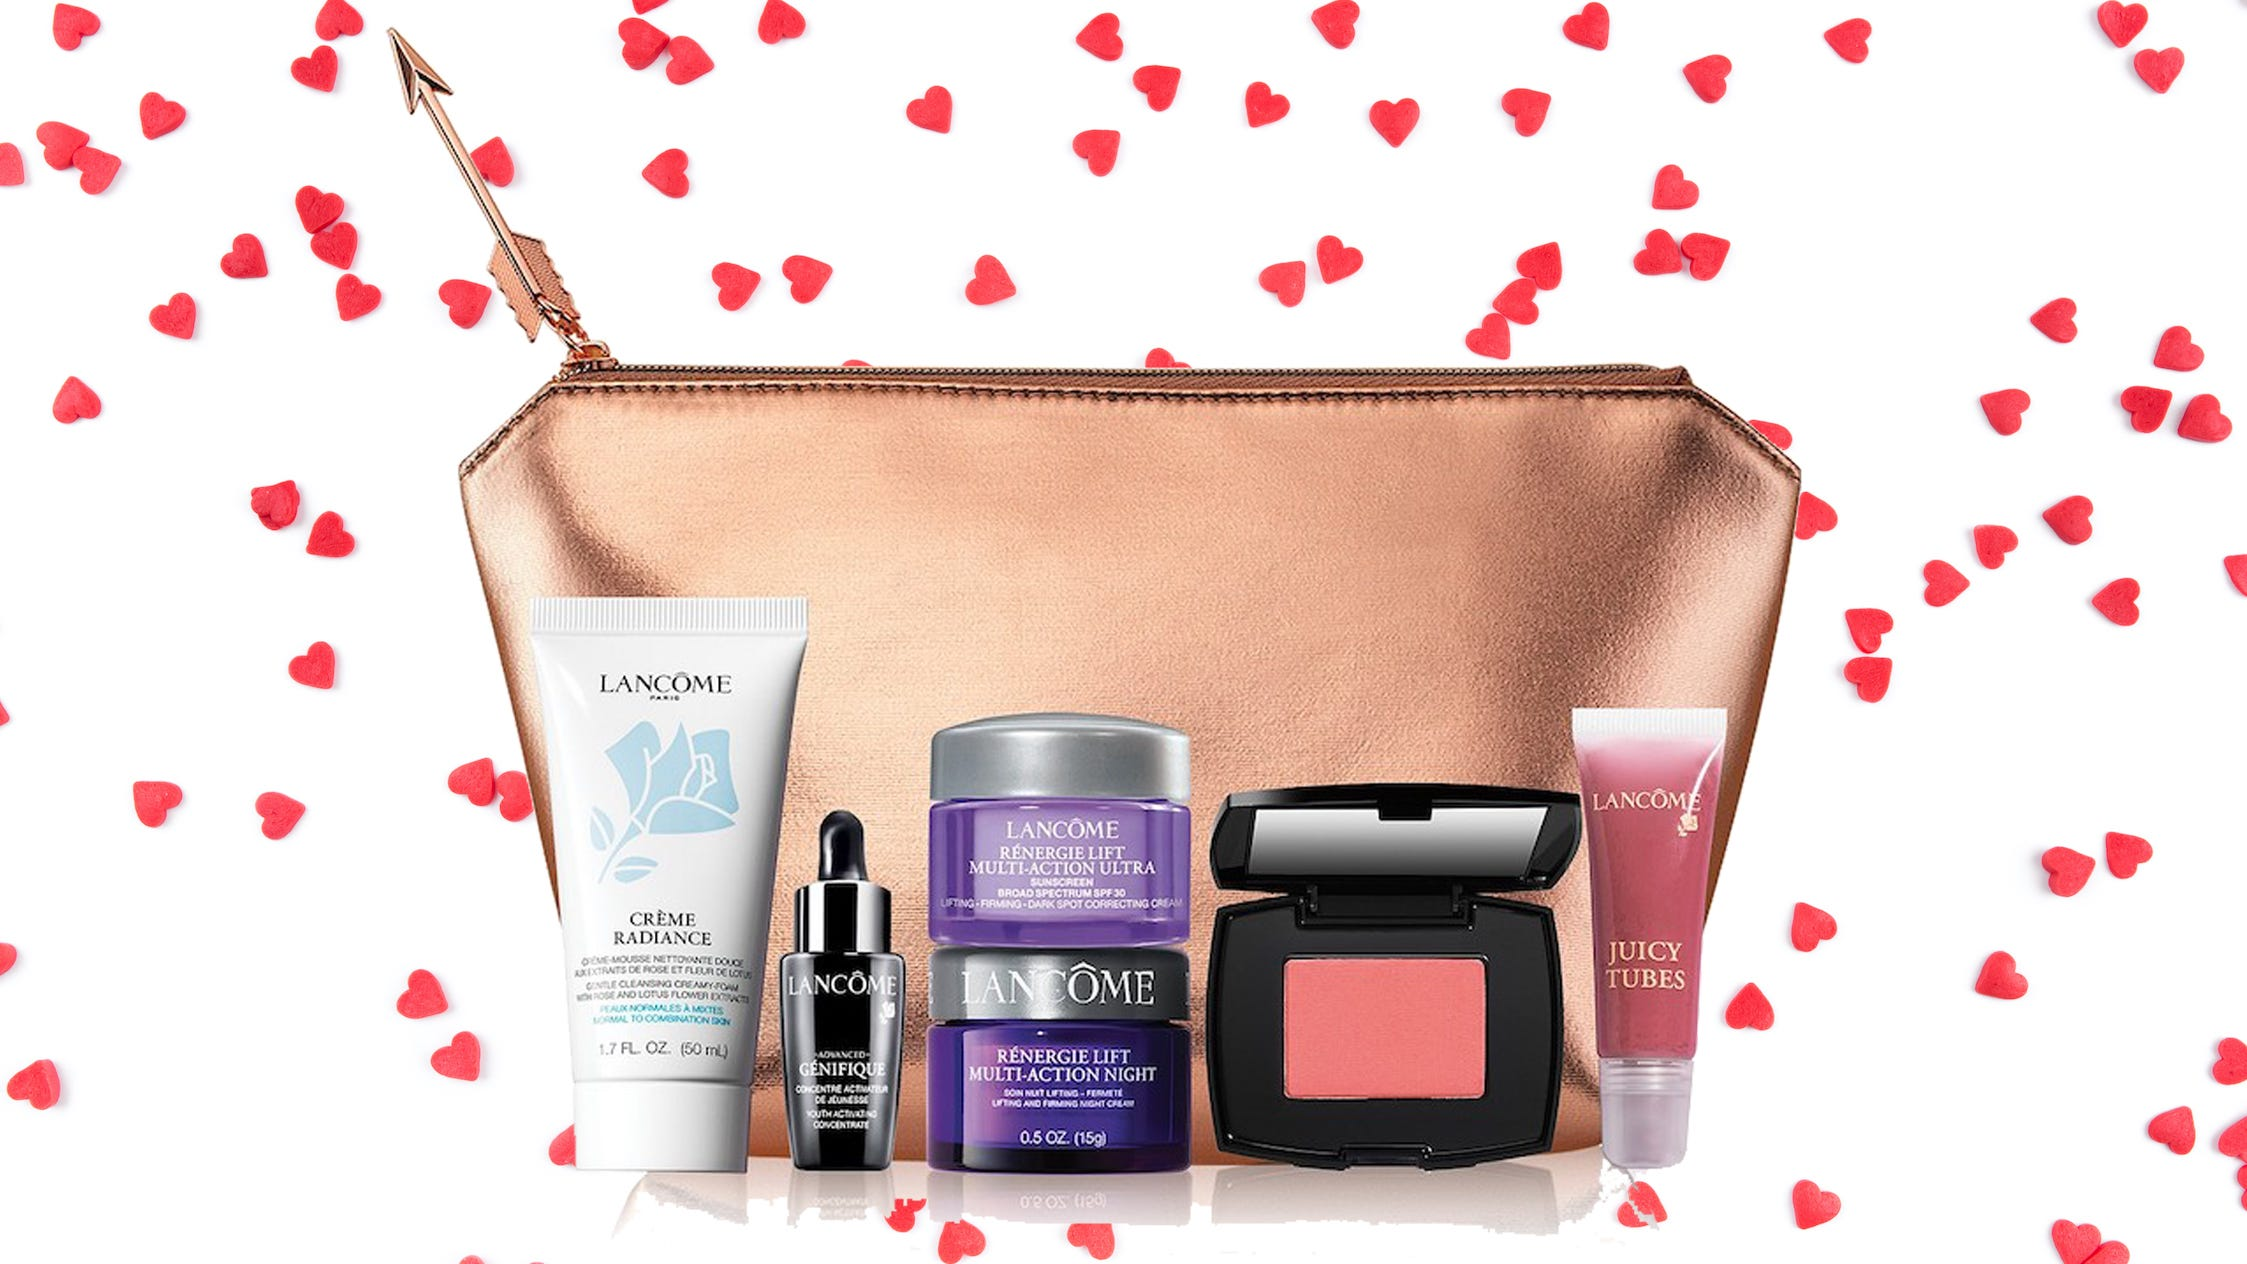 You can get a free 7-piece Lancôme gift with purchase right now—here's how